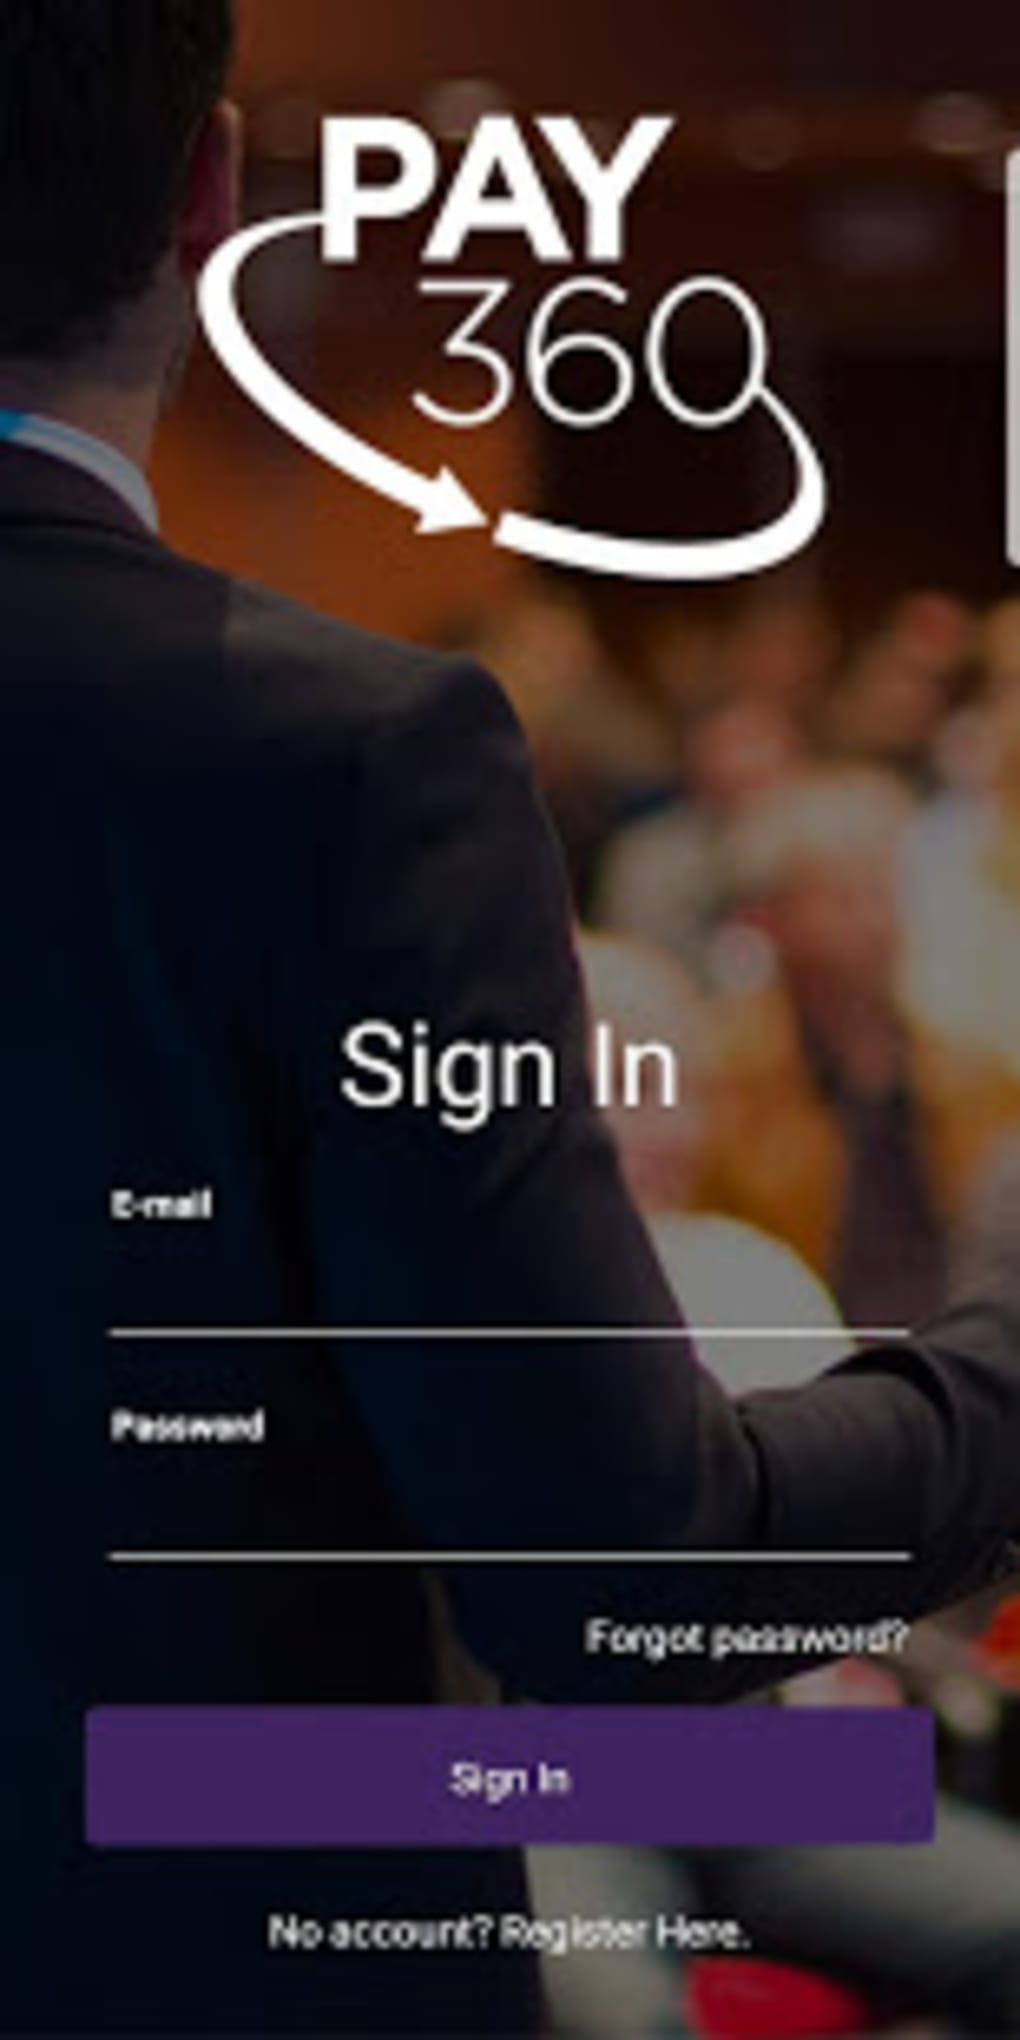 PAY360 Conference for Android - Download